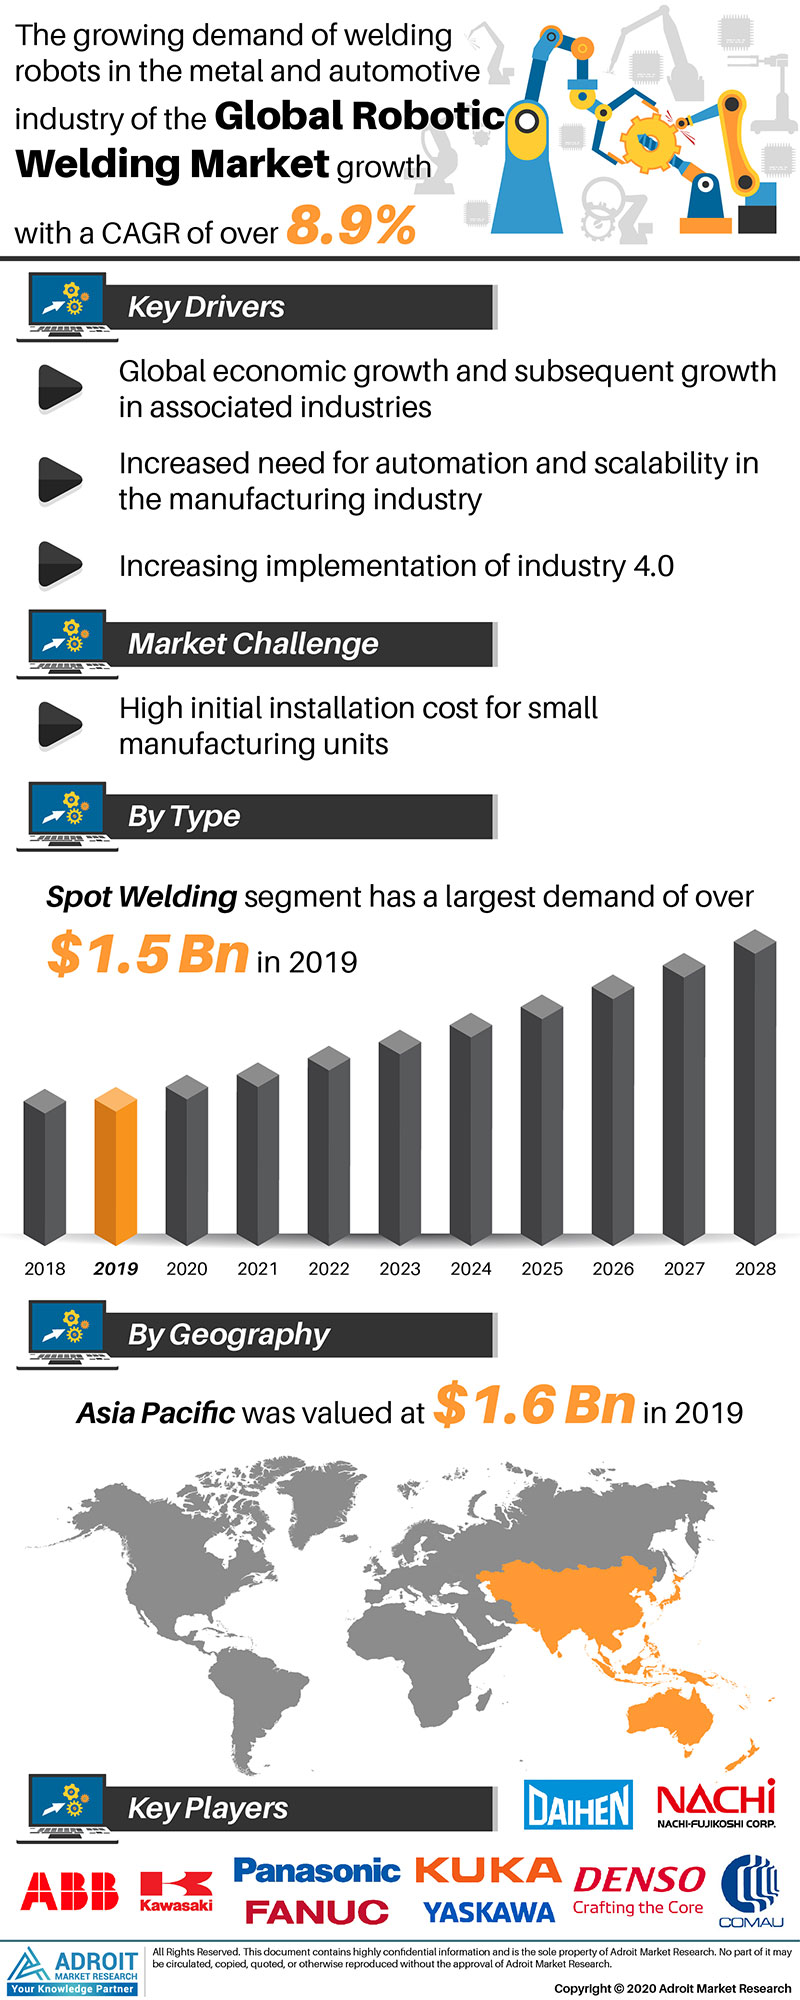 Robotic Welding Market Size 2017 By Application, Product, Region and Forecast 2019 to 2025